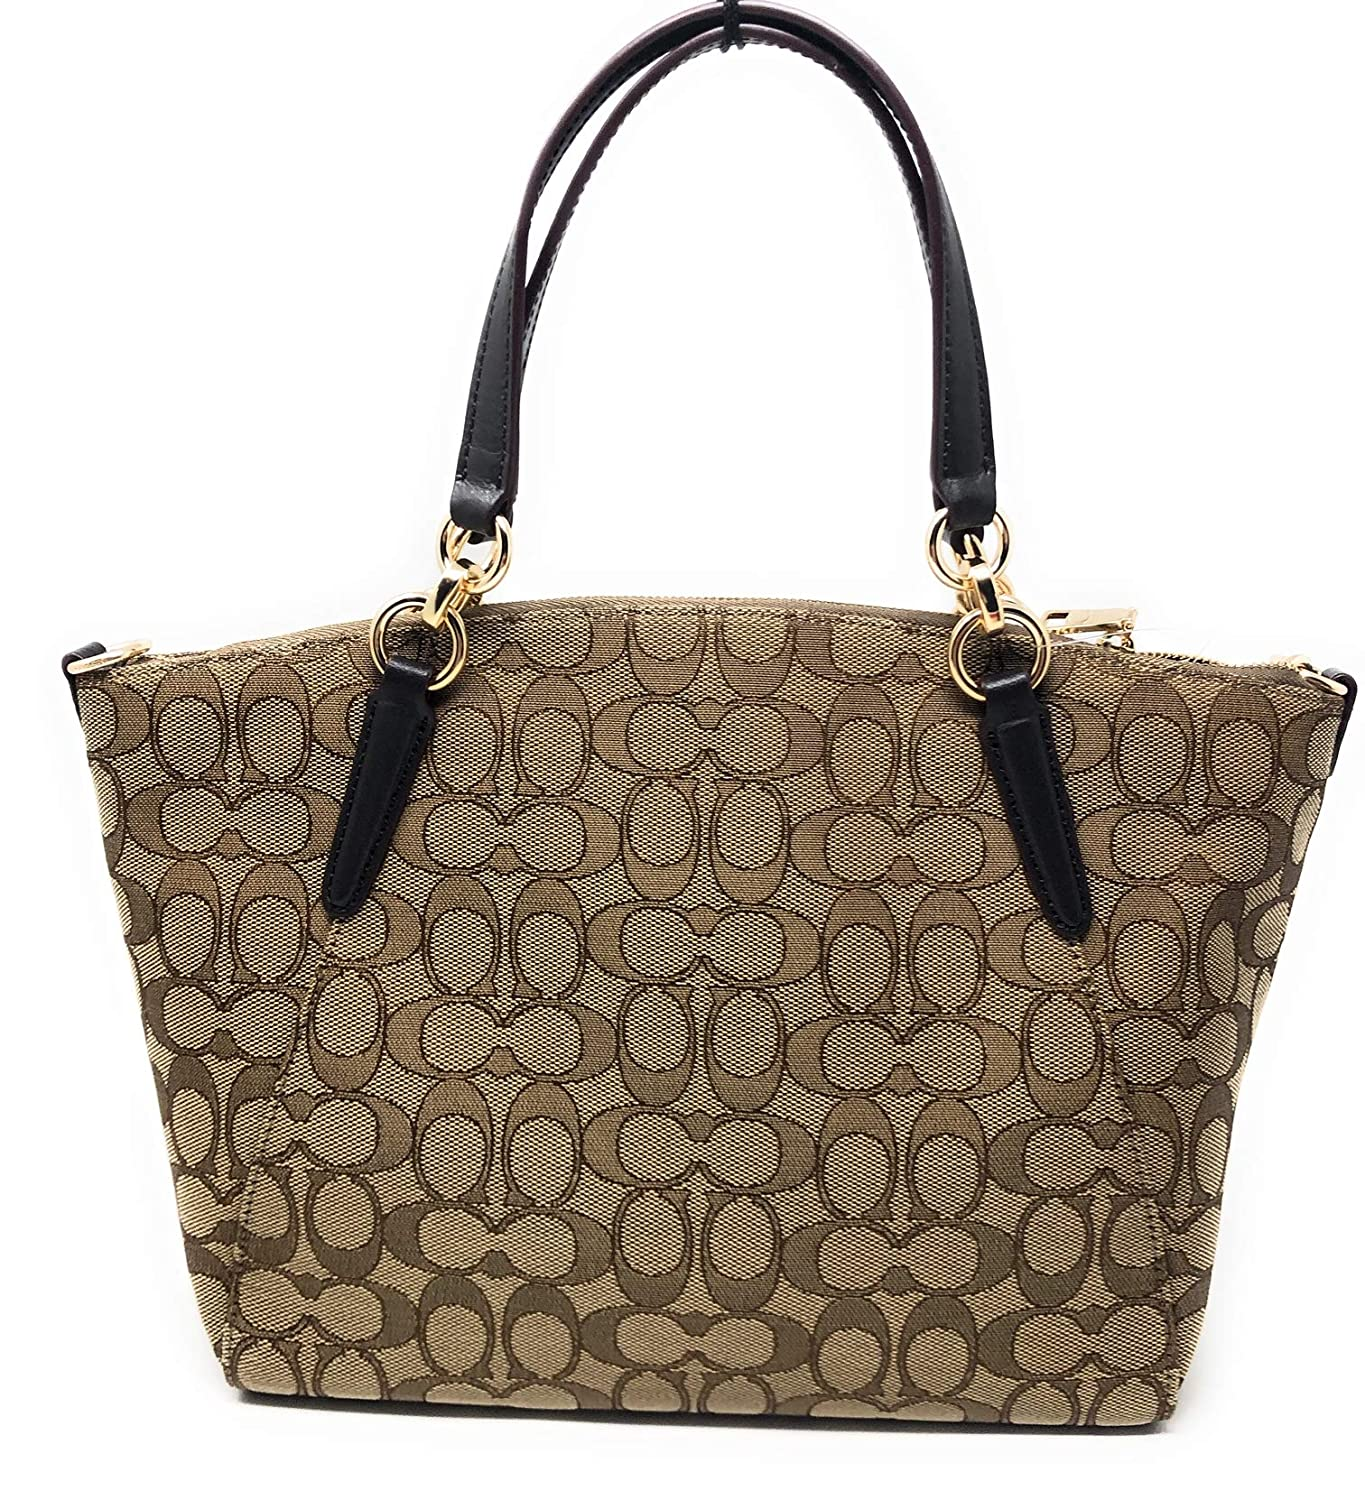 5f56601f08ef Amazon.com  SMALL KELSEY SATCHEL IN SIGNATURE JACQUARD  Clothing